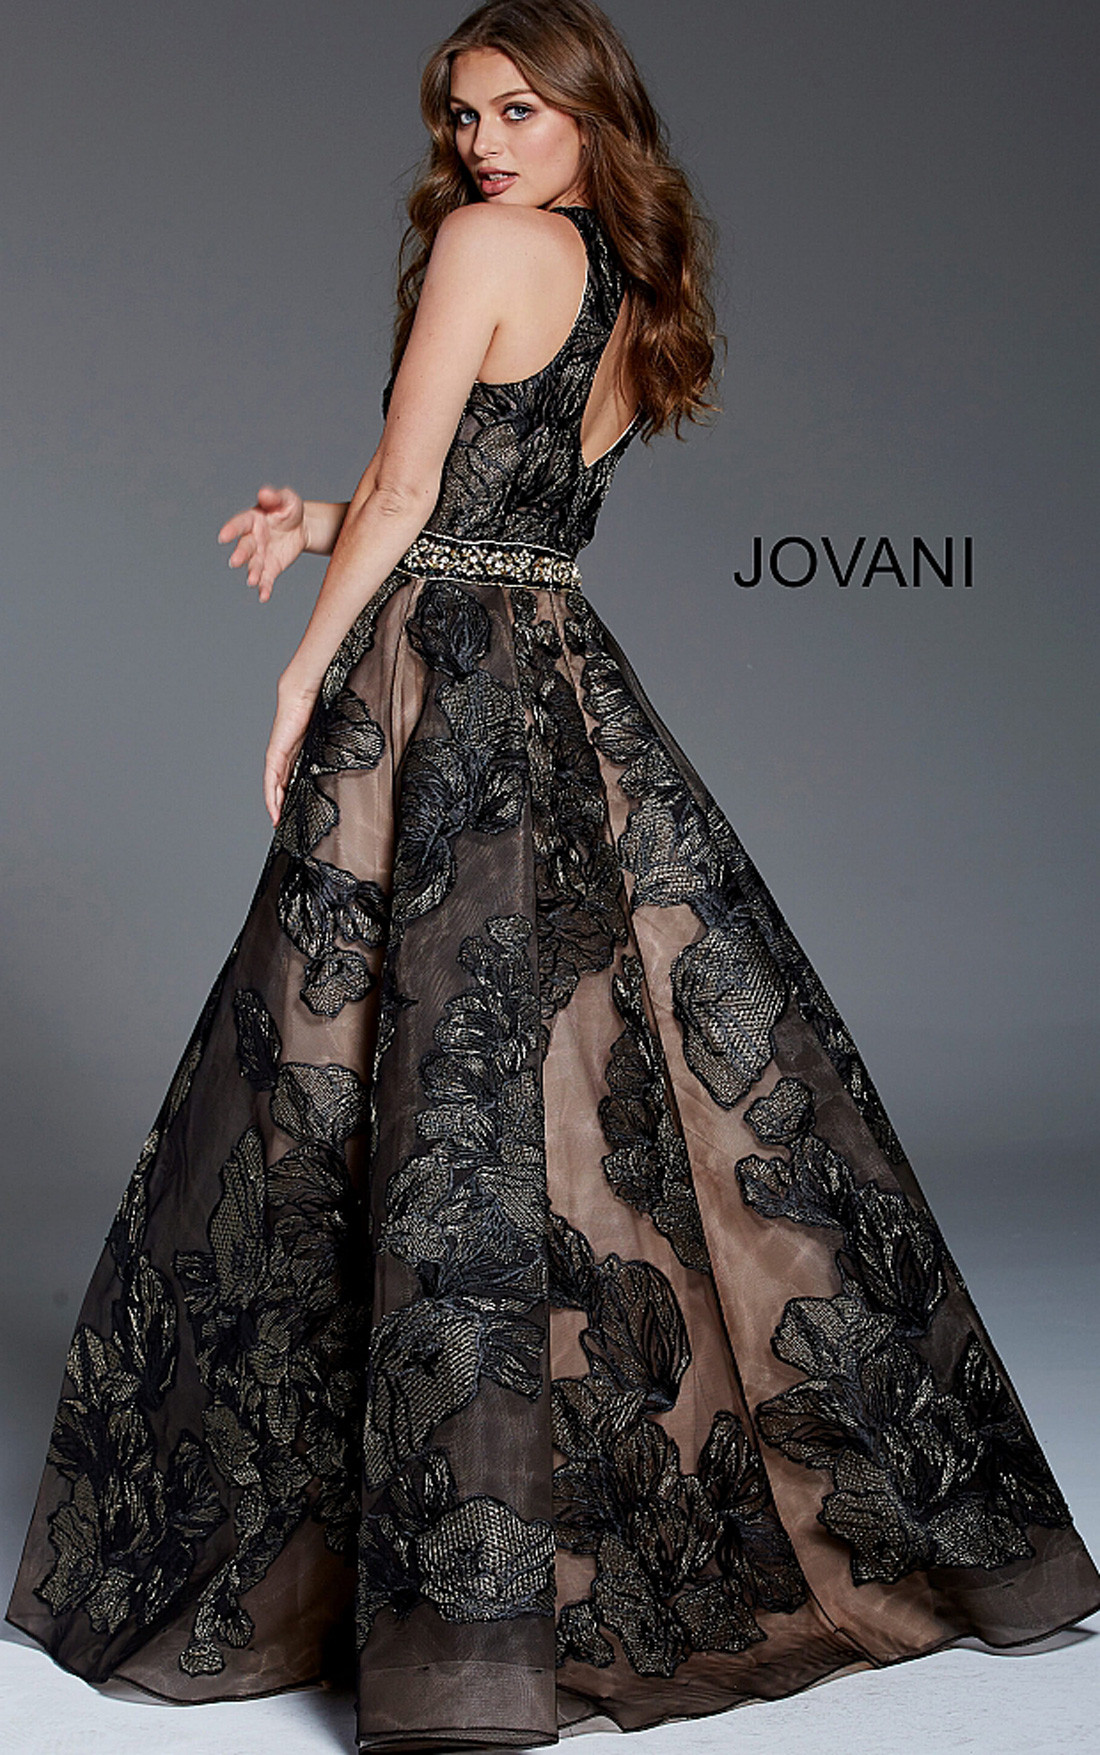 Jovani Dresses   Womens Black Floral Sleeveless A-Line Gown   Womens ...